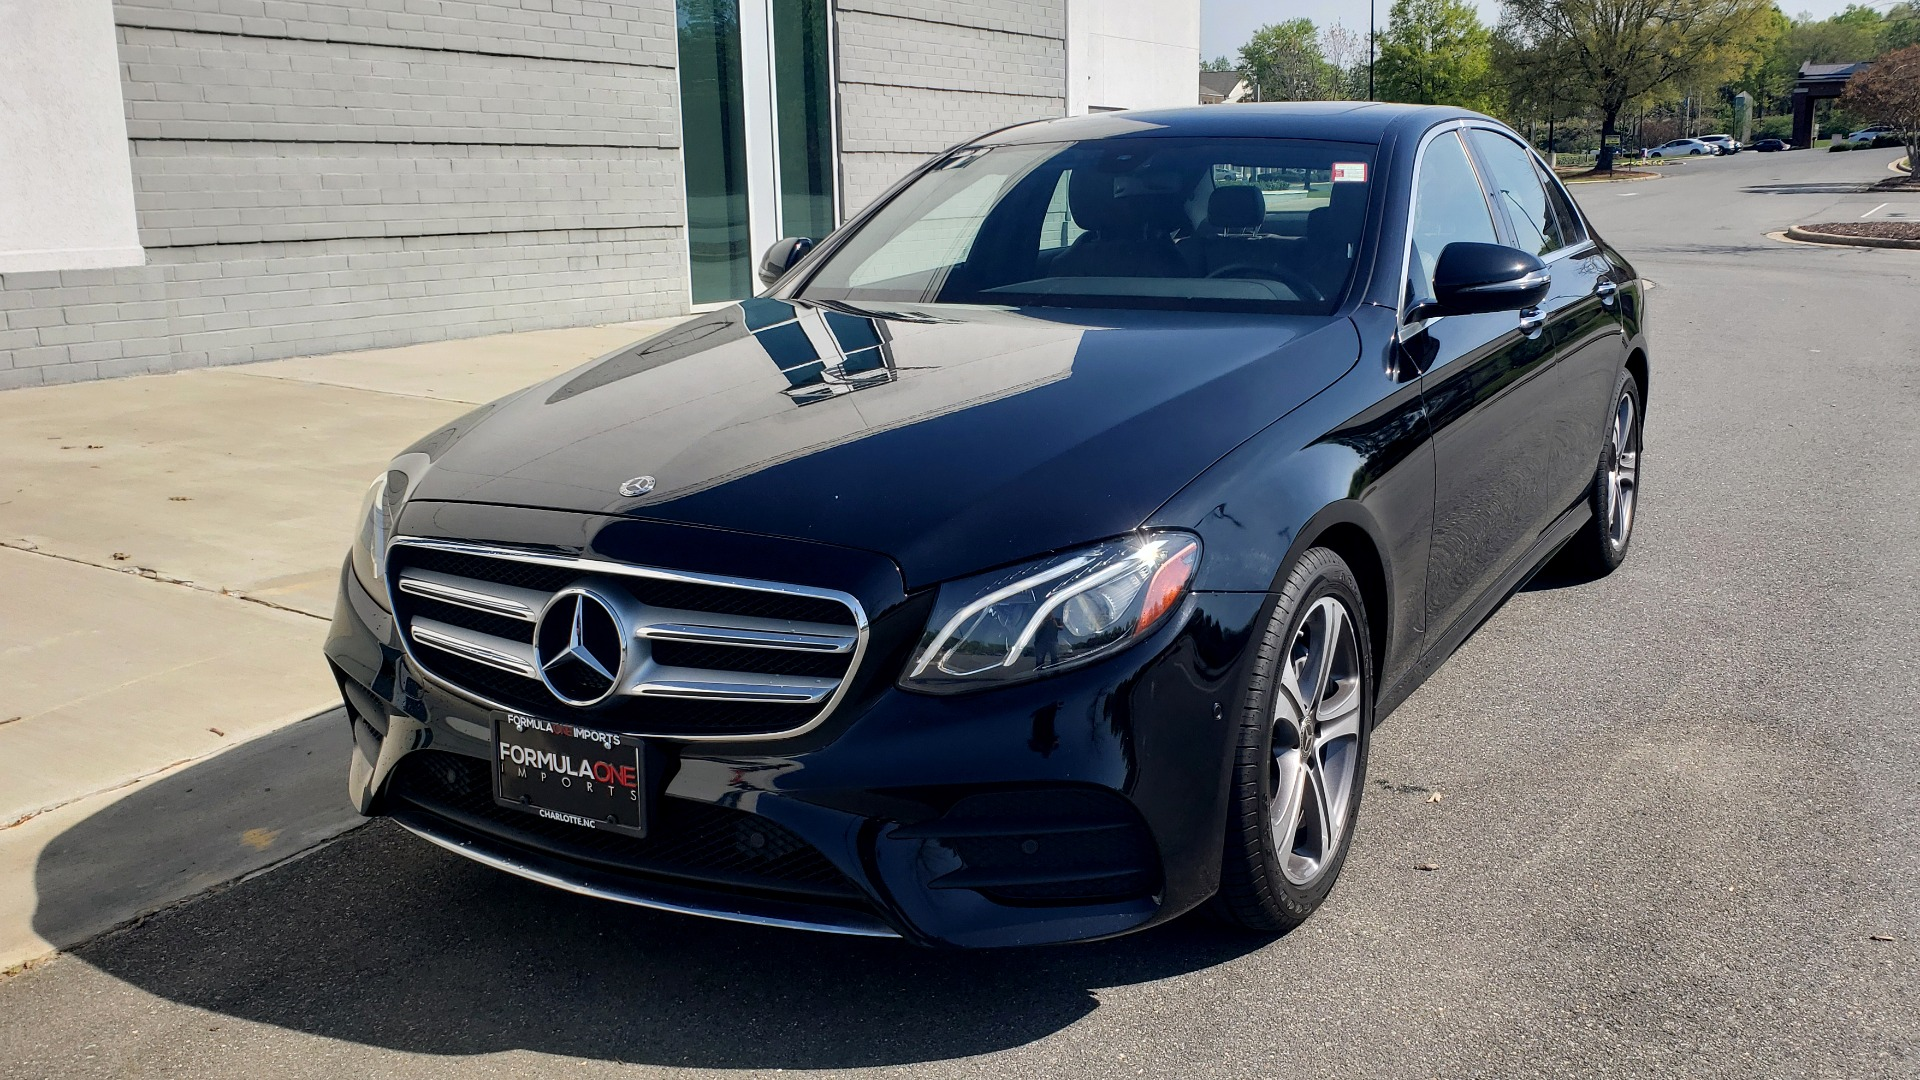 Used 2018 Mercedes-Benz E-CLASS E 300 4MATIC PREMIUM / NAV / BURMESTER SND / BSM / REARVIEW for sale $33,995 at Formula Imports in Charlotte NC 28227 3